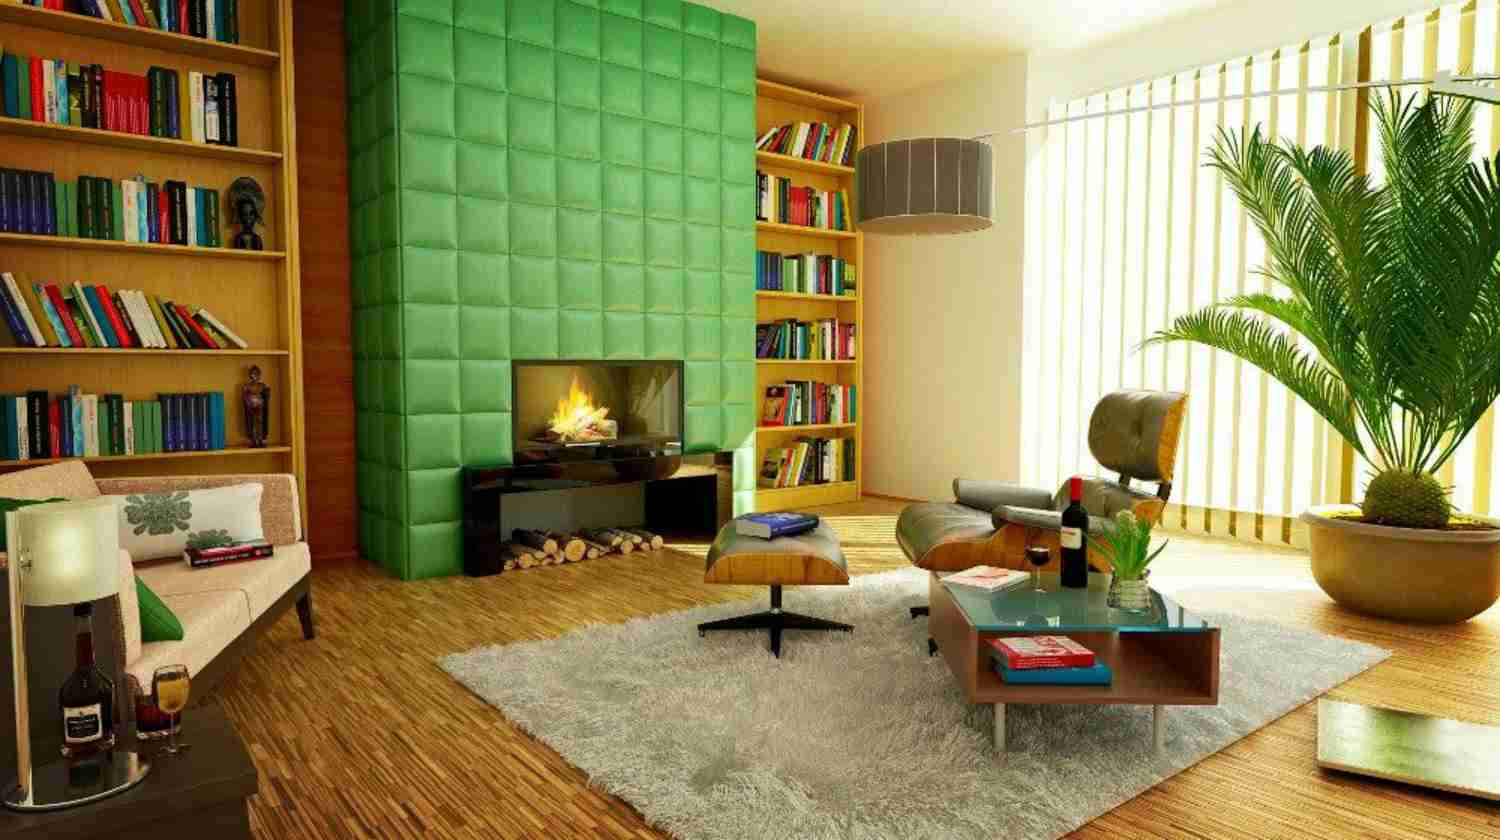 How to Create an Accurate and Realistic Home Improvement Budget?